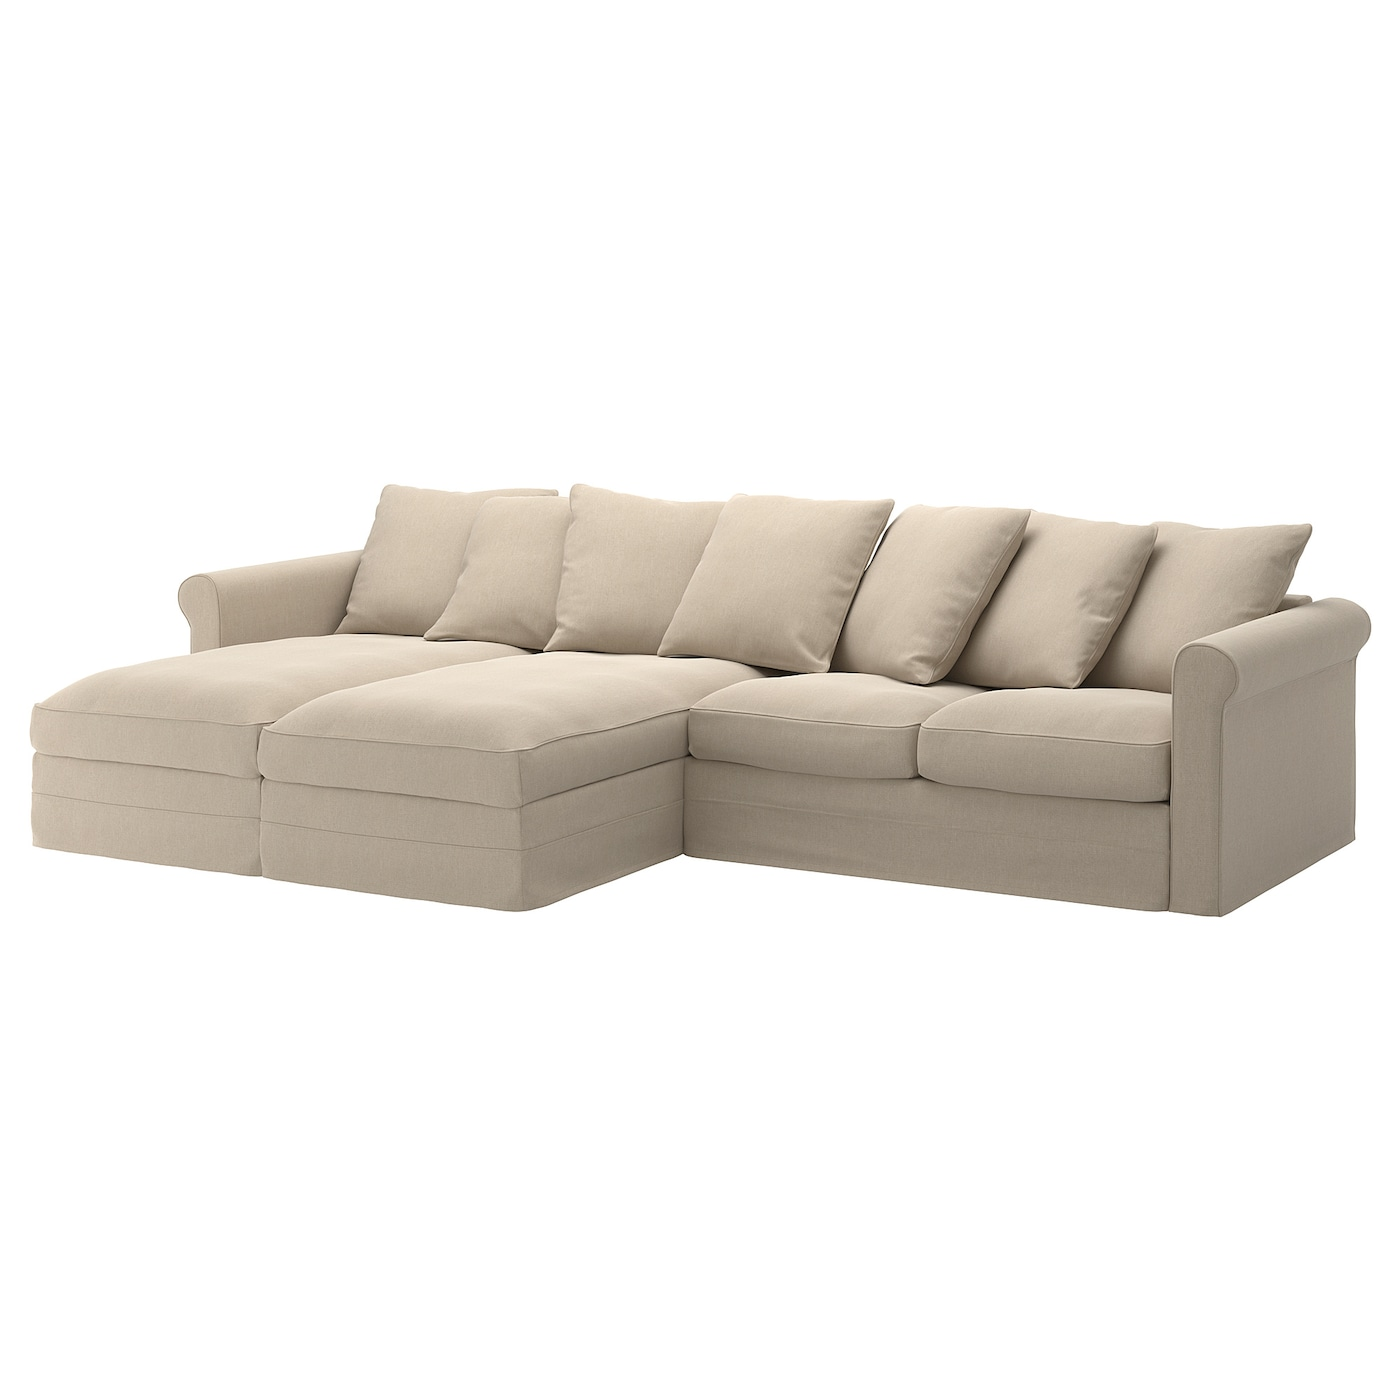 Attirant IKEA GRÖNLID 4 Seat Sofa The Cover Is Easy To Keep Clean Since It Is